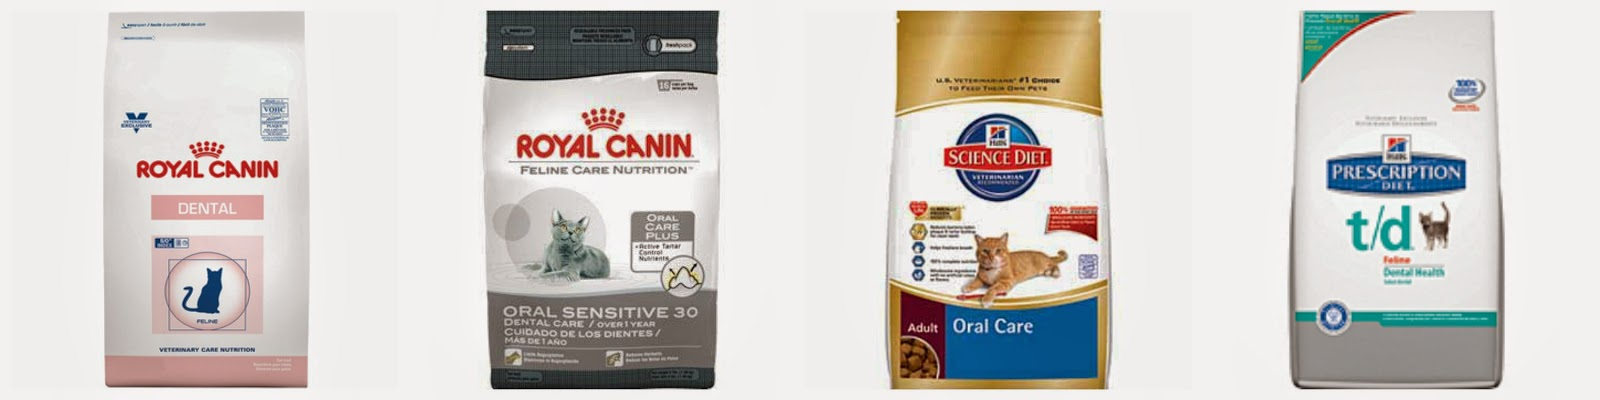 Royal Canin and Science Diet Oral Health Diets | Exclusively Cats Veterinary Hospital, Waterford, MI